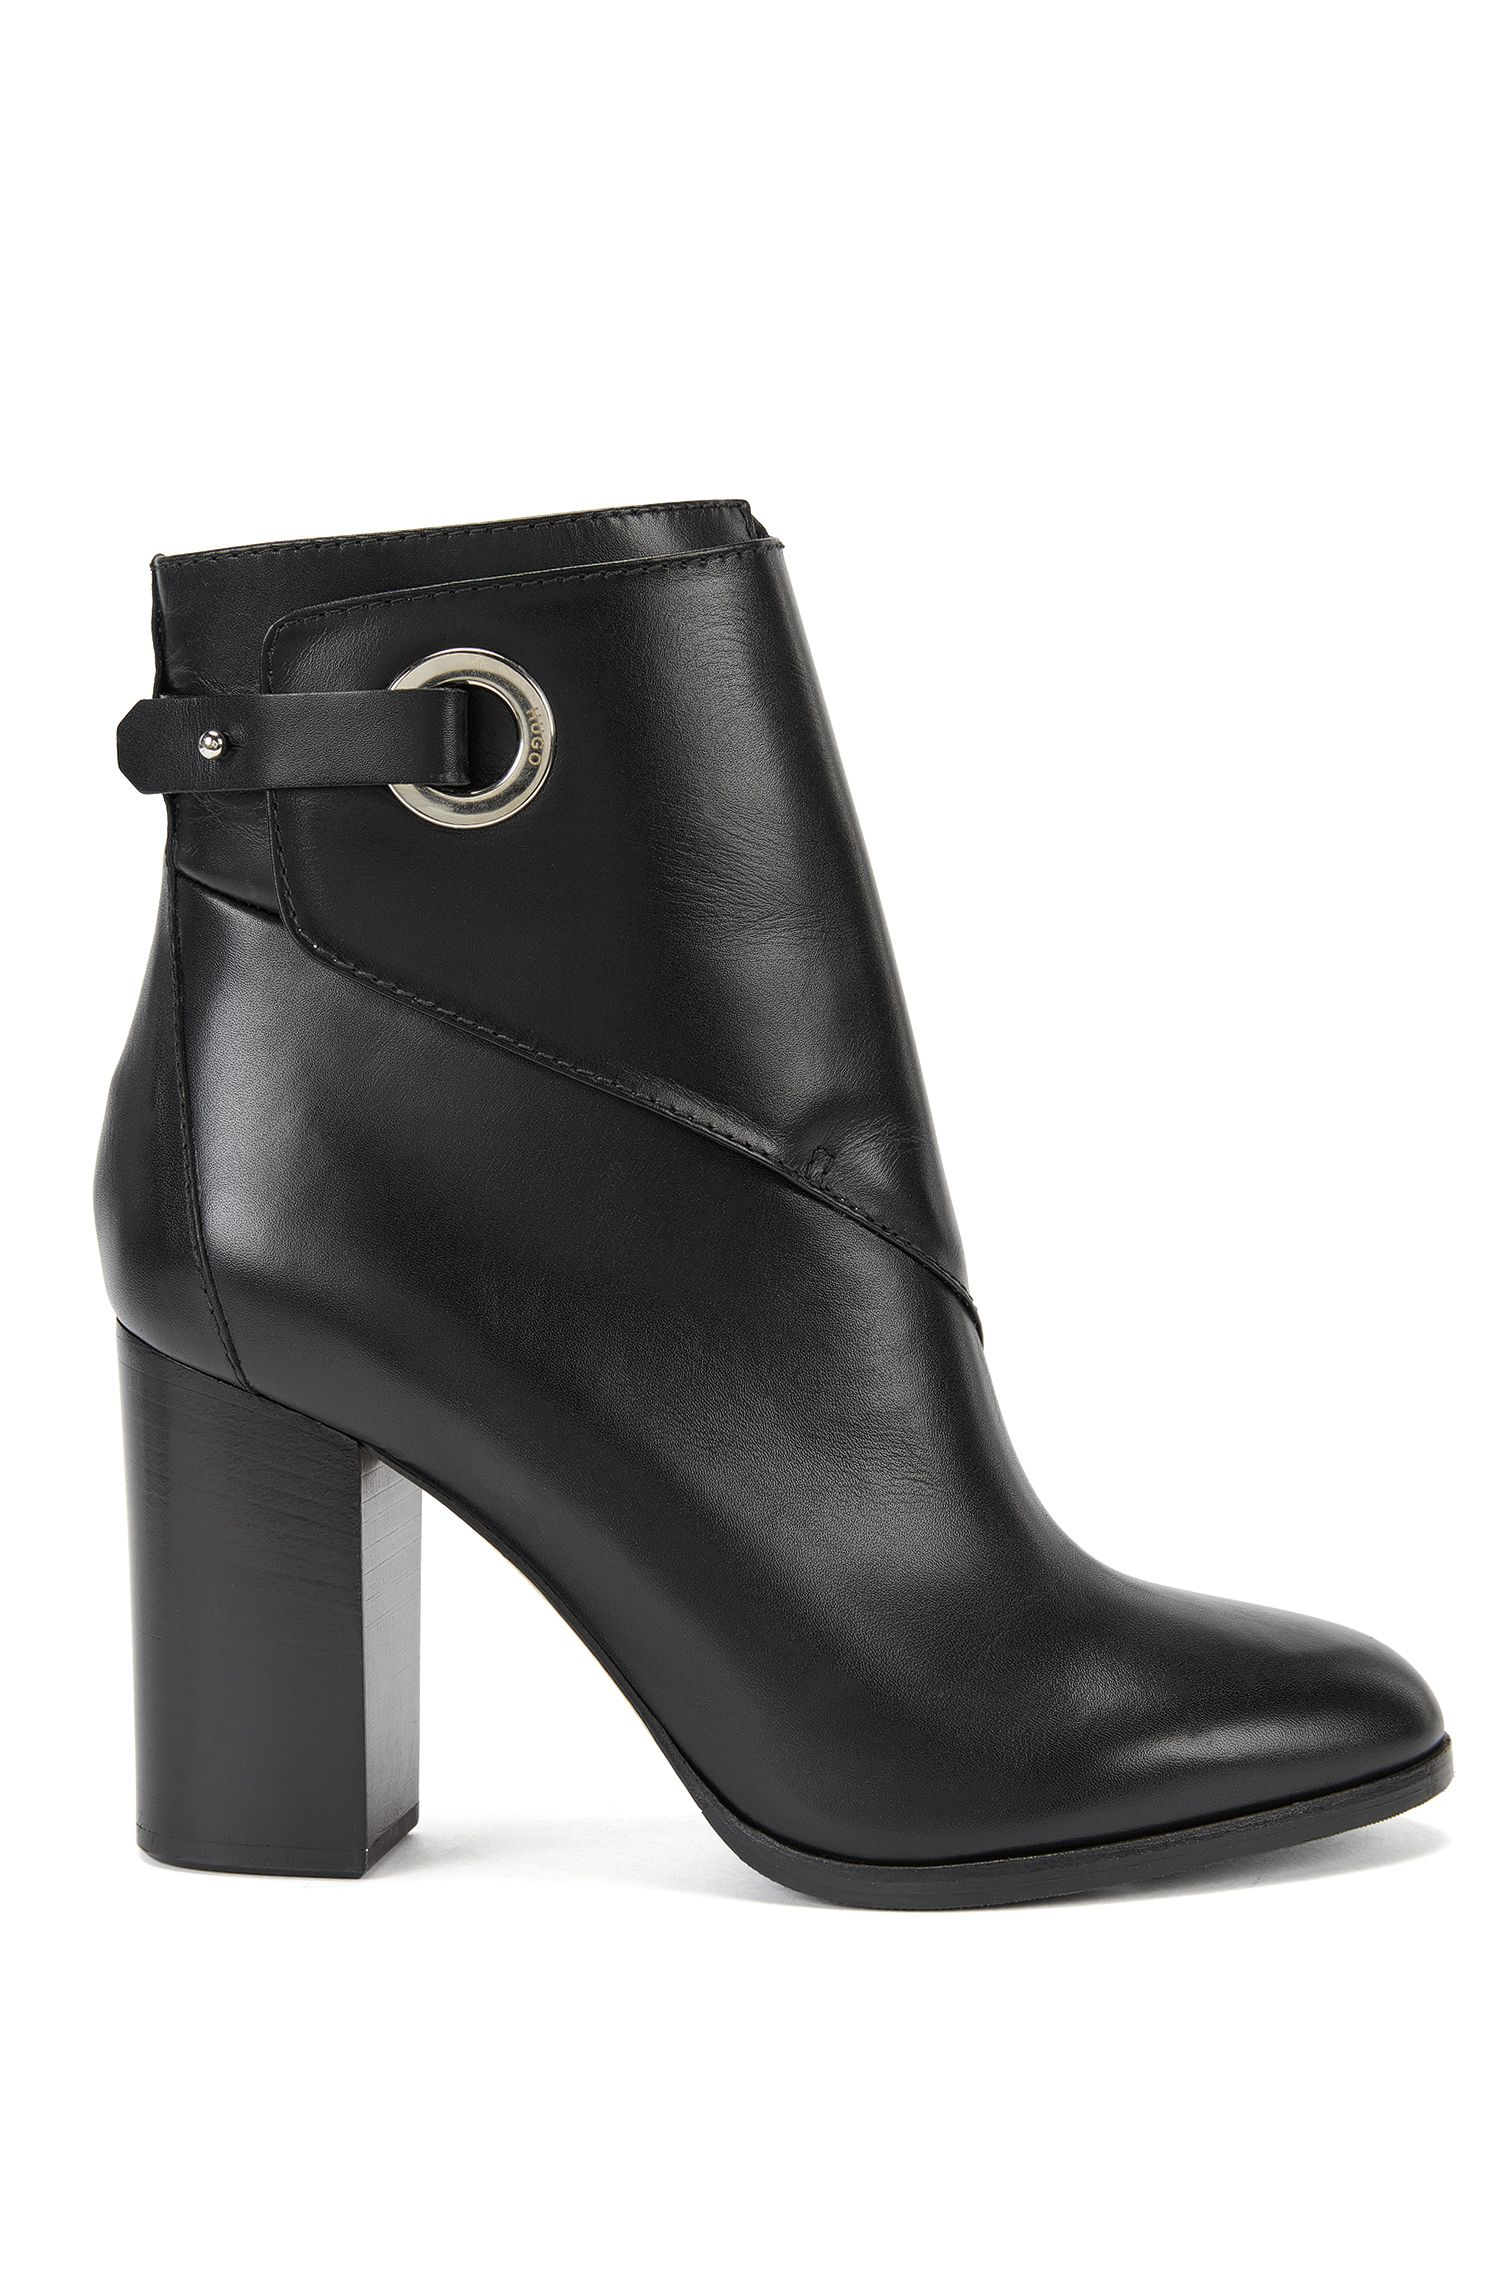 Leather ankle boots with porthole closure